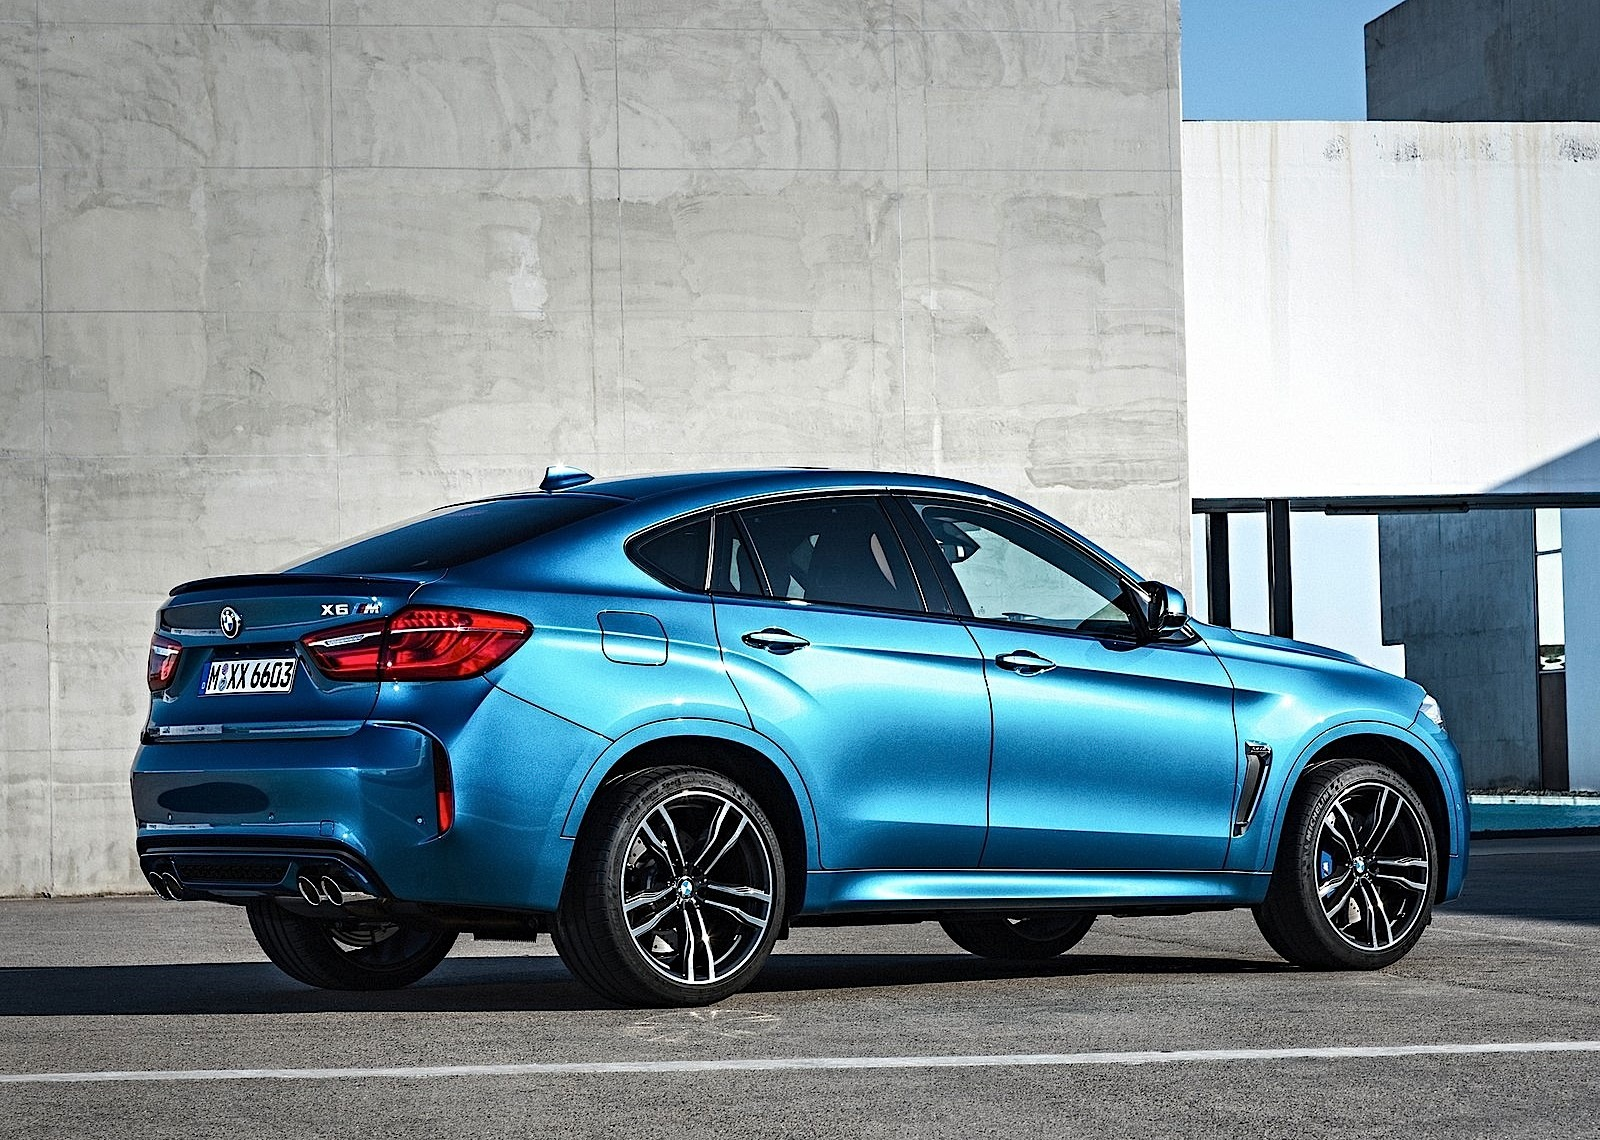 Bmw X8 Specs Upcoming Cars Reviews 2019 2020 By Minniegeorge Com